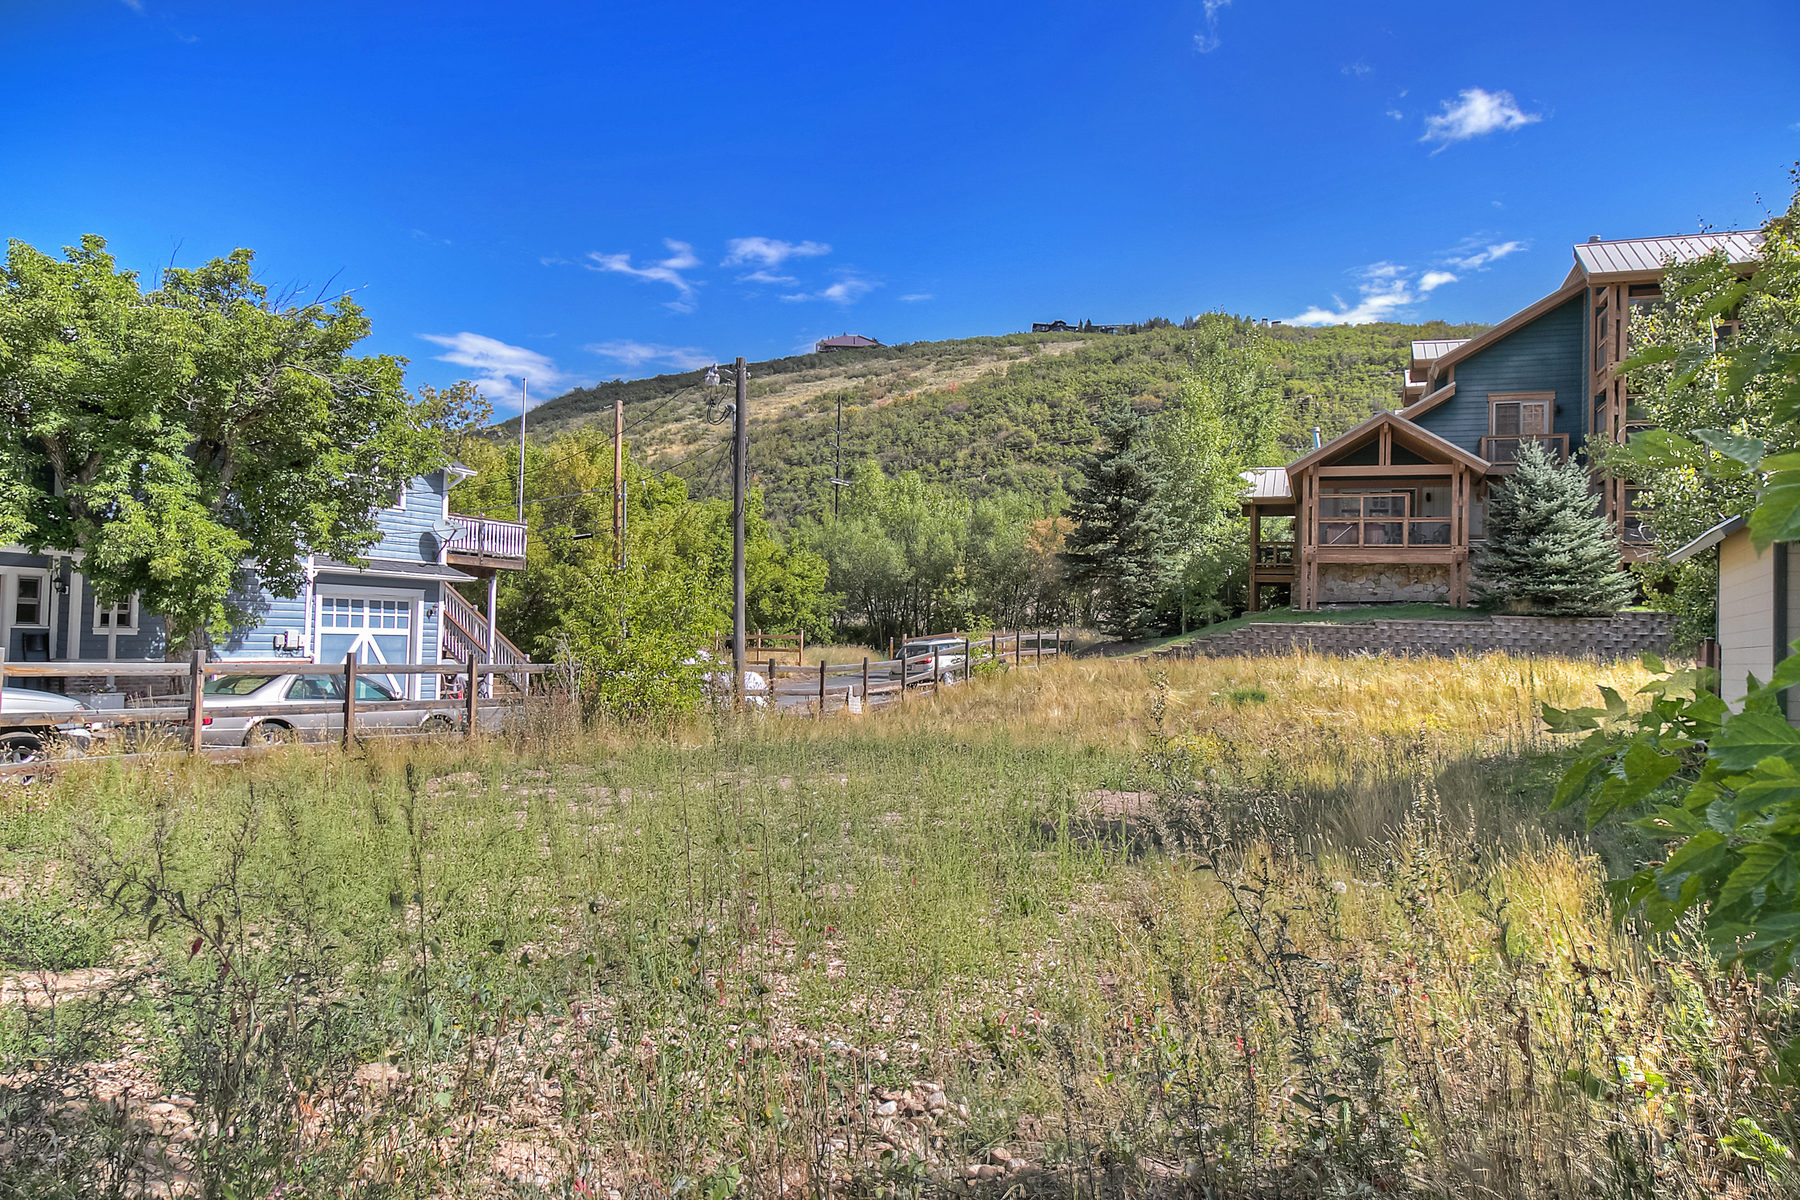 Terreno por un Venta en 3 Lot Development Opportunity 1064 Park Ave Lot 15 & Lot 16 Park City, Utah 84060 Estados Unidos